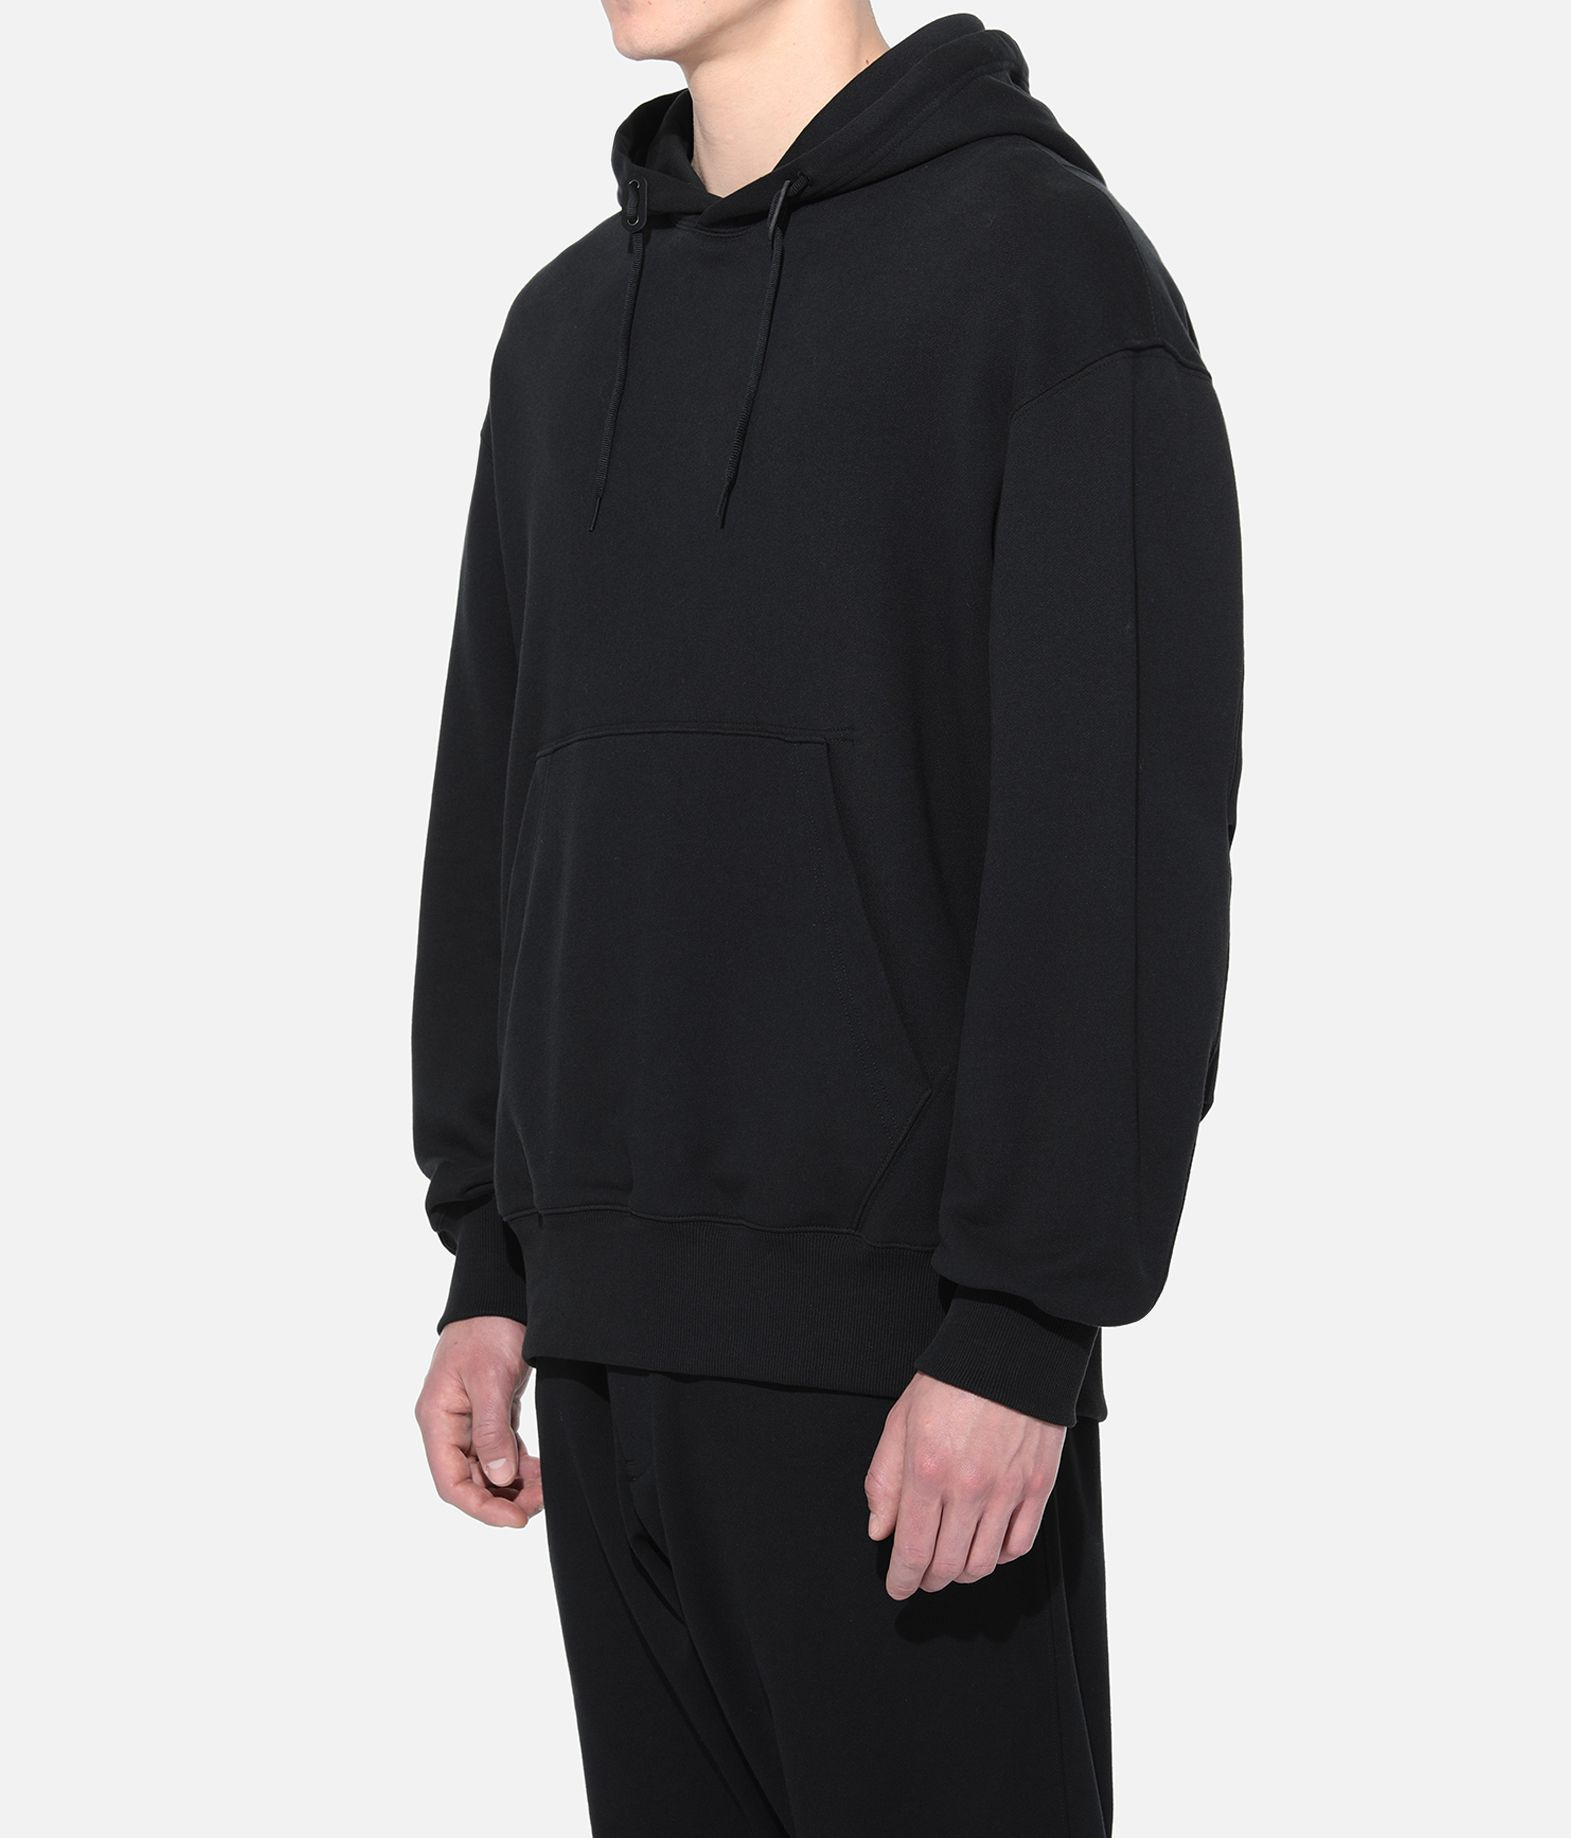 Y-3 Y-3 Toketa Print Hoodie Hooded sweatshirt Man e